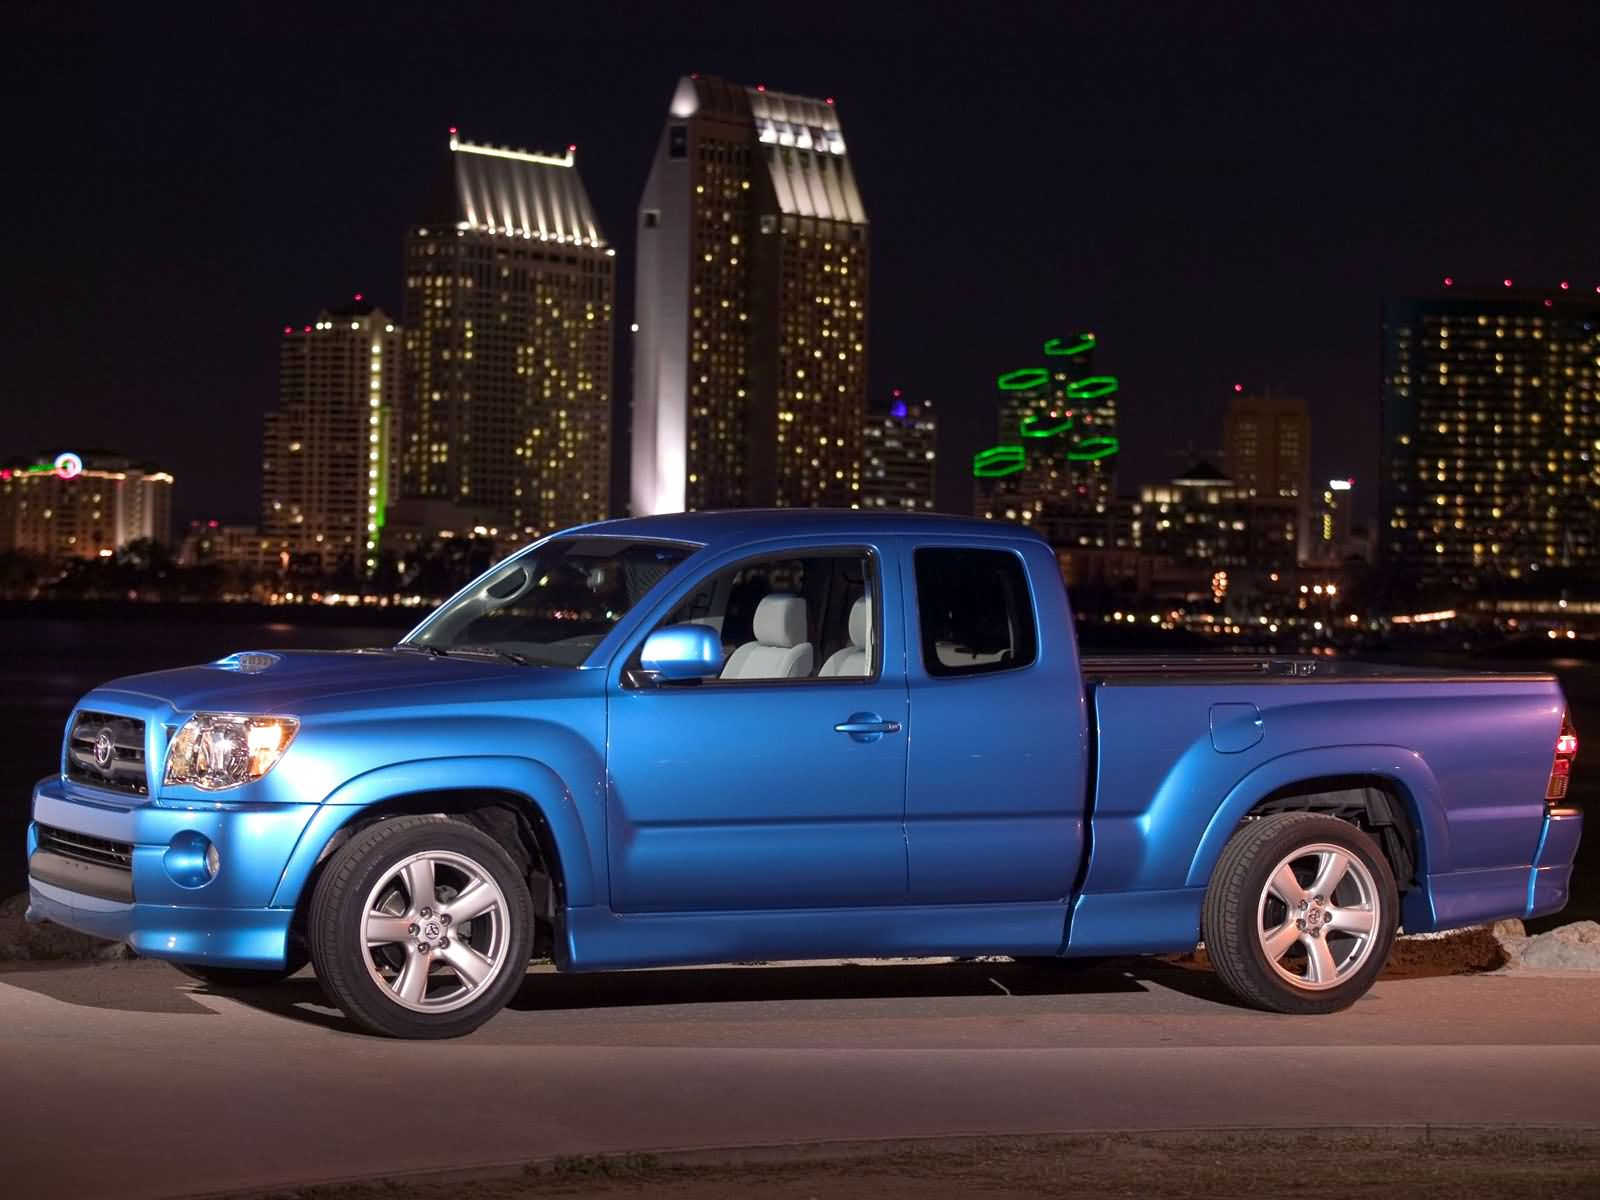 toyota tacoma x runner 2005 toyota tacoma x runner 2005 photo 10 car in pictures car photo. Black Bedroom Furniture Sets. Home Design Ideas